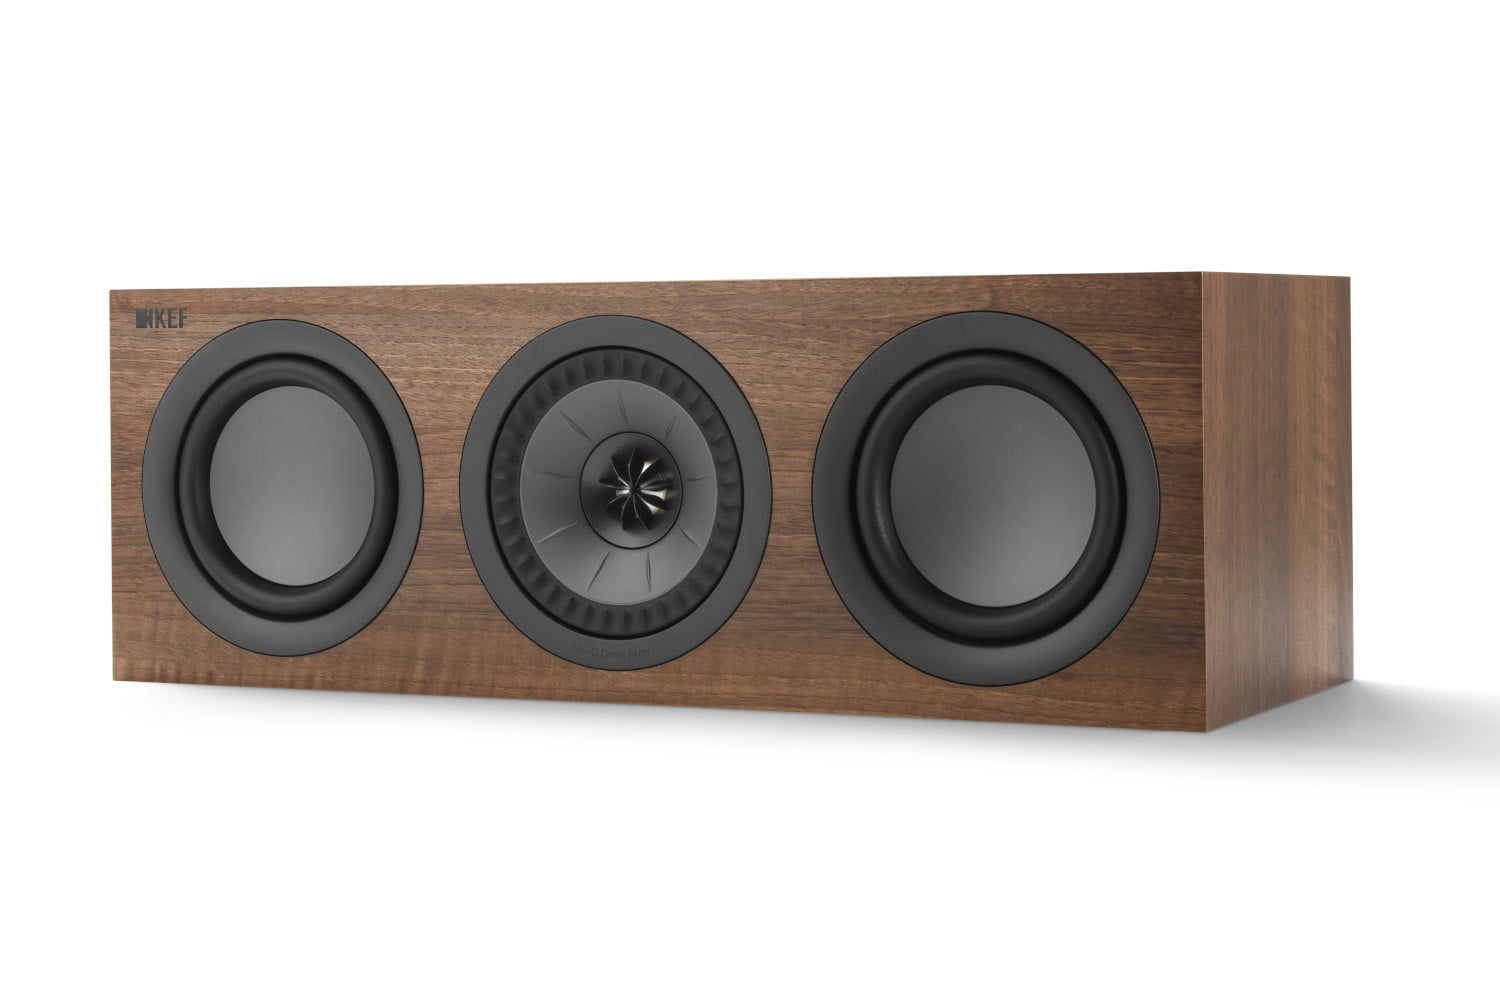 KEF's new Q250c is the chameleon of home theater speakers